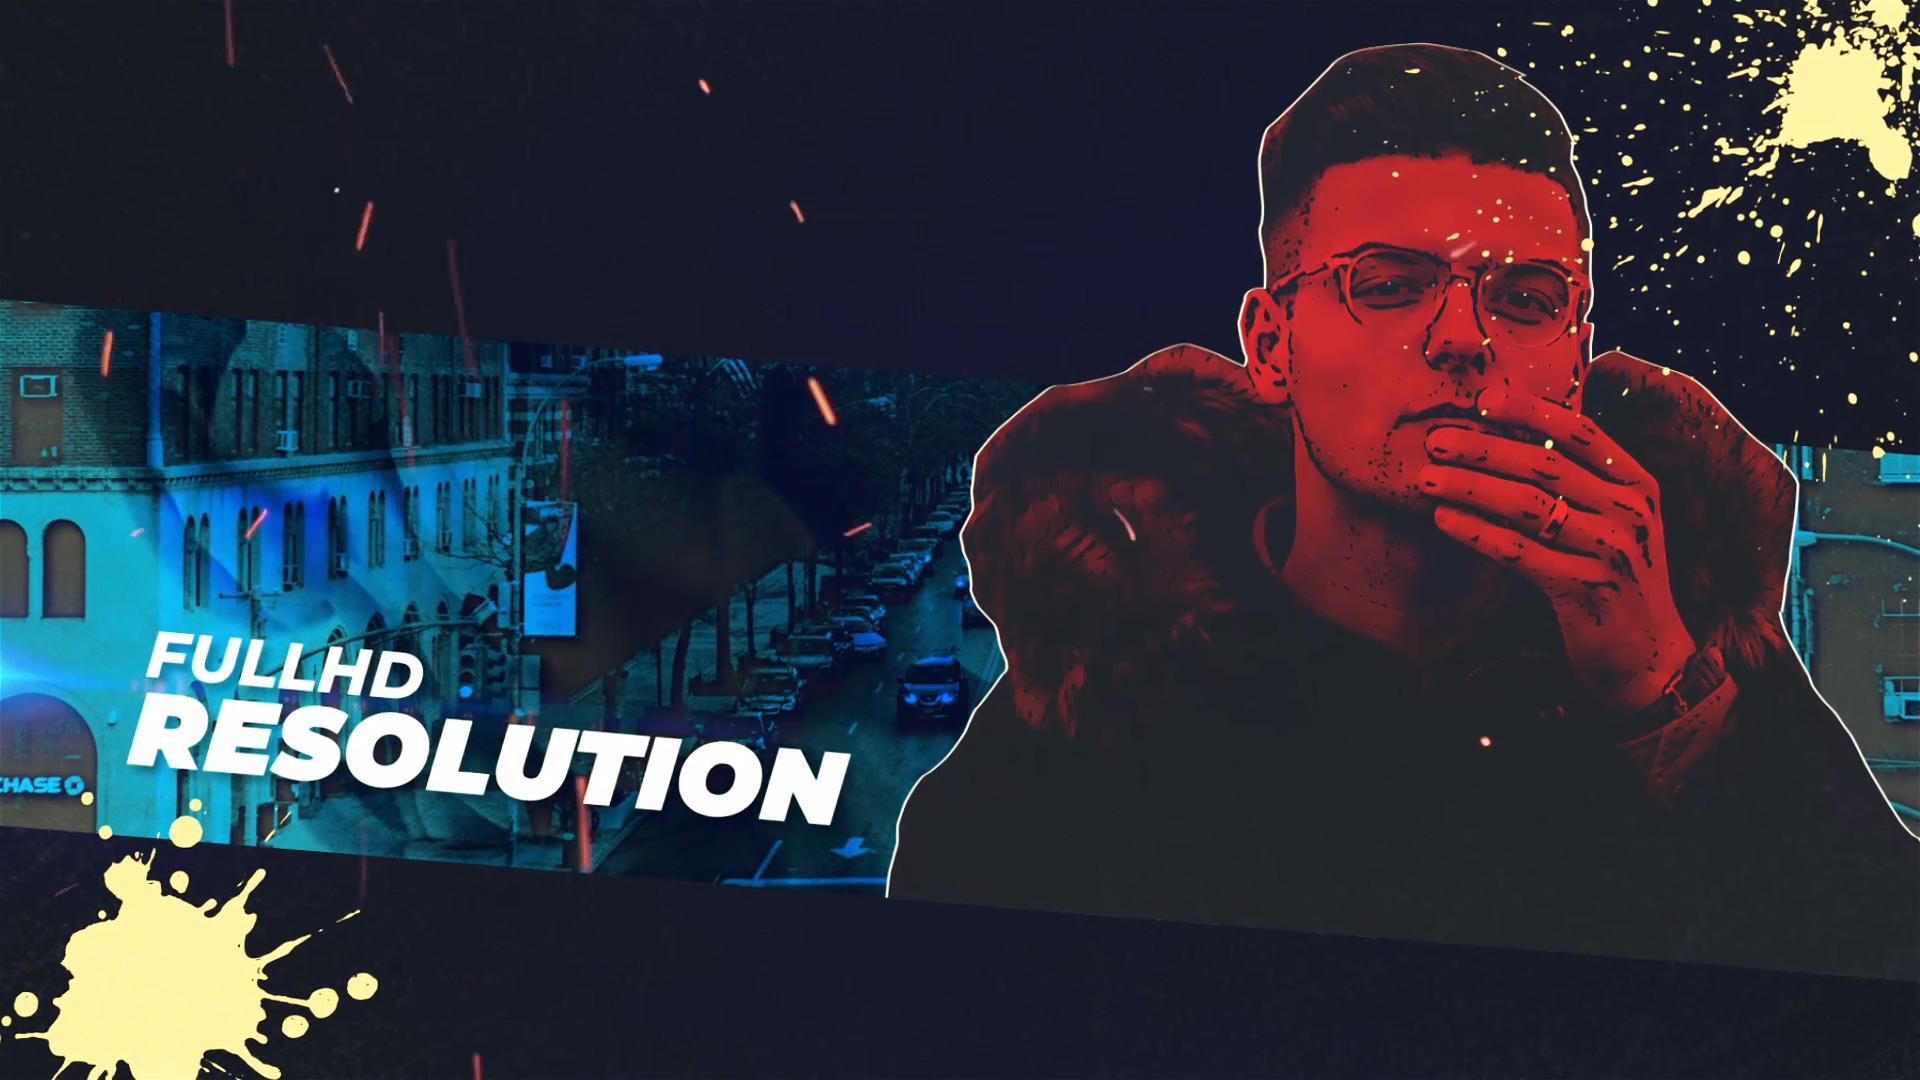 illustration style cyber punk ae template